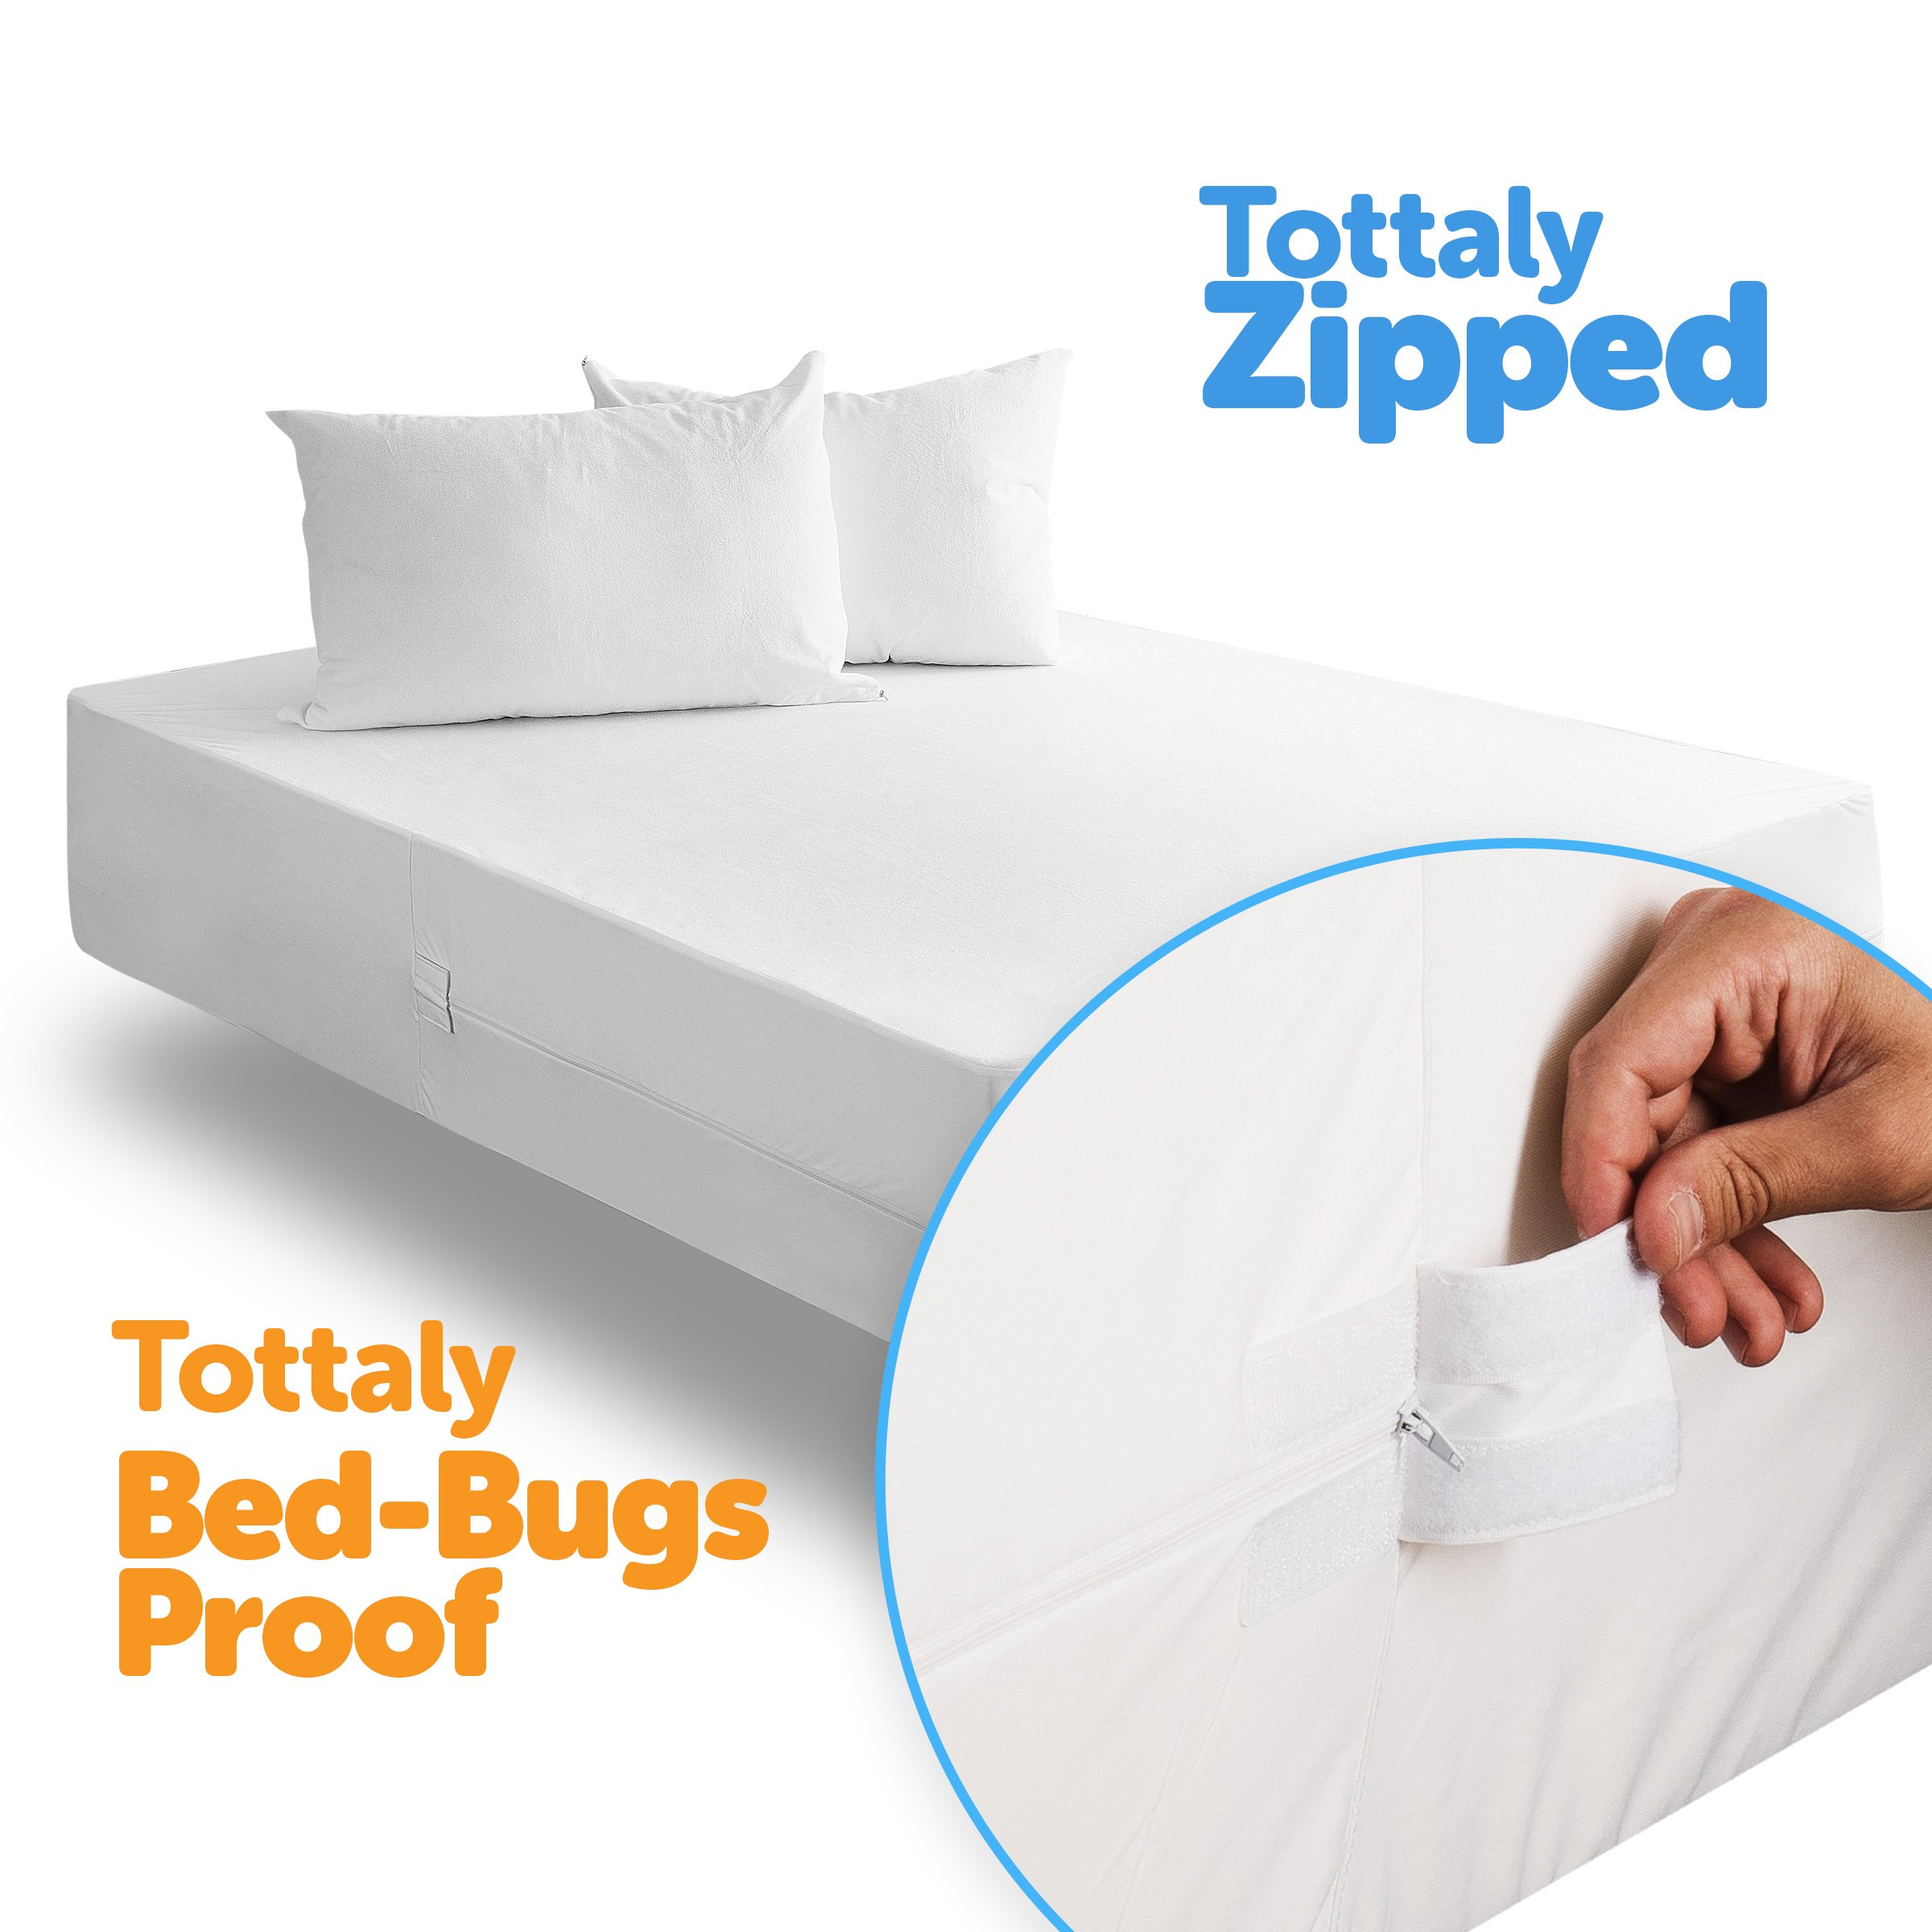 joluzzy Zippered Mattress Protector - 100% Bed Bug Proof/Waterproof Six-Sided Mattress Encasement - Cotton Terry, Breathable, Noiseless, Hypoallergenic, Vinyl-Free, Twin-XL Size by joluzzy (Image #3)